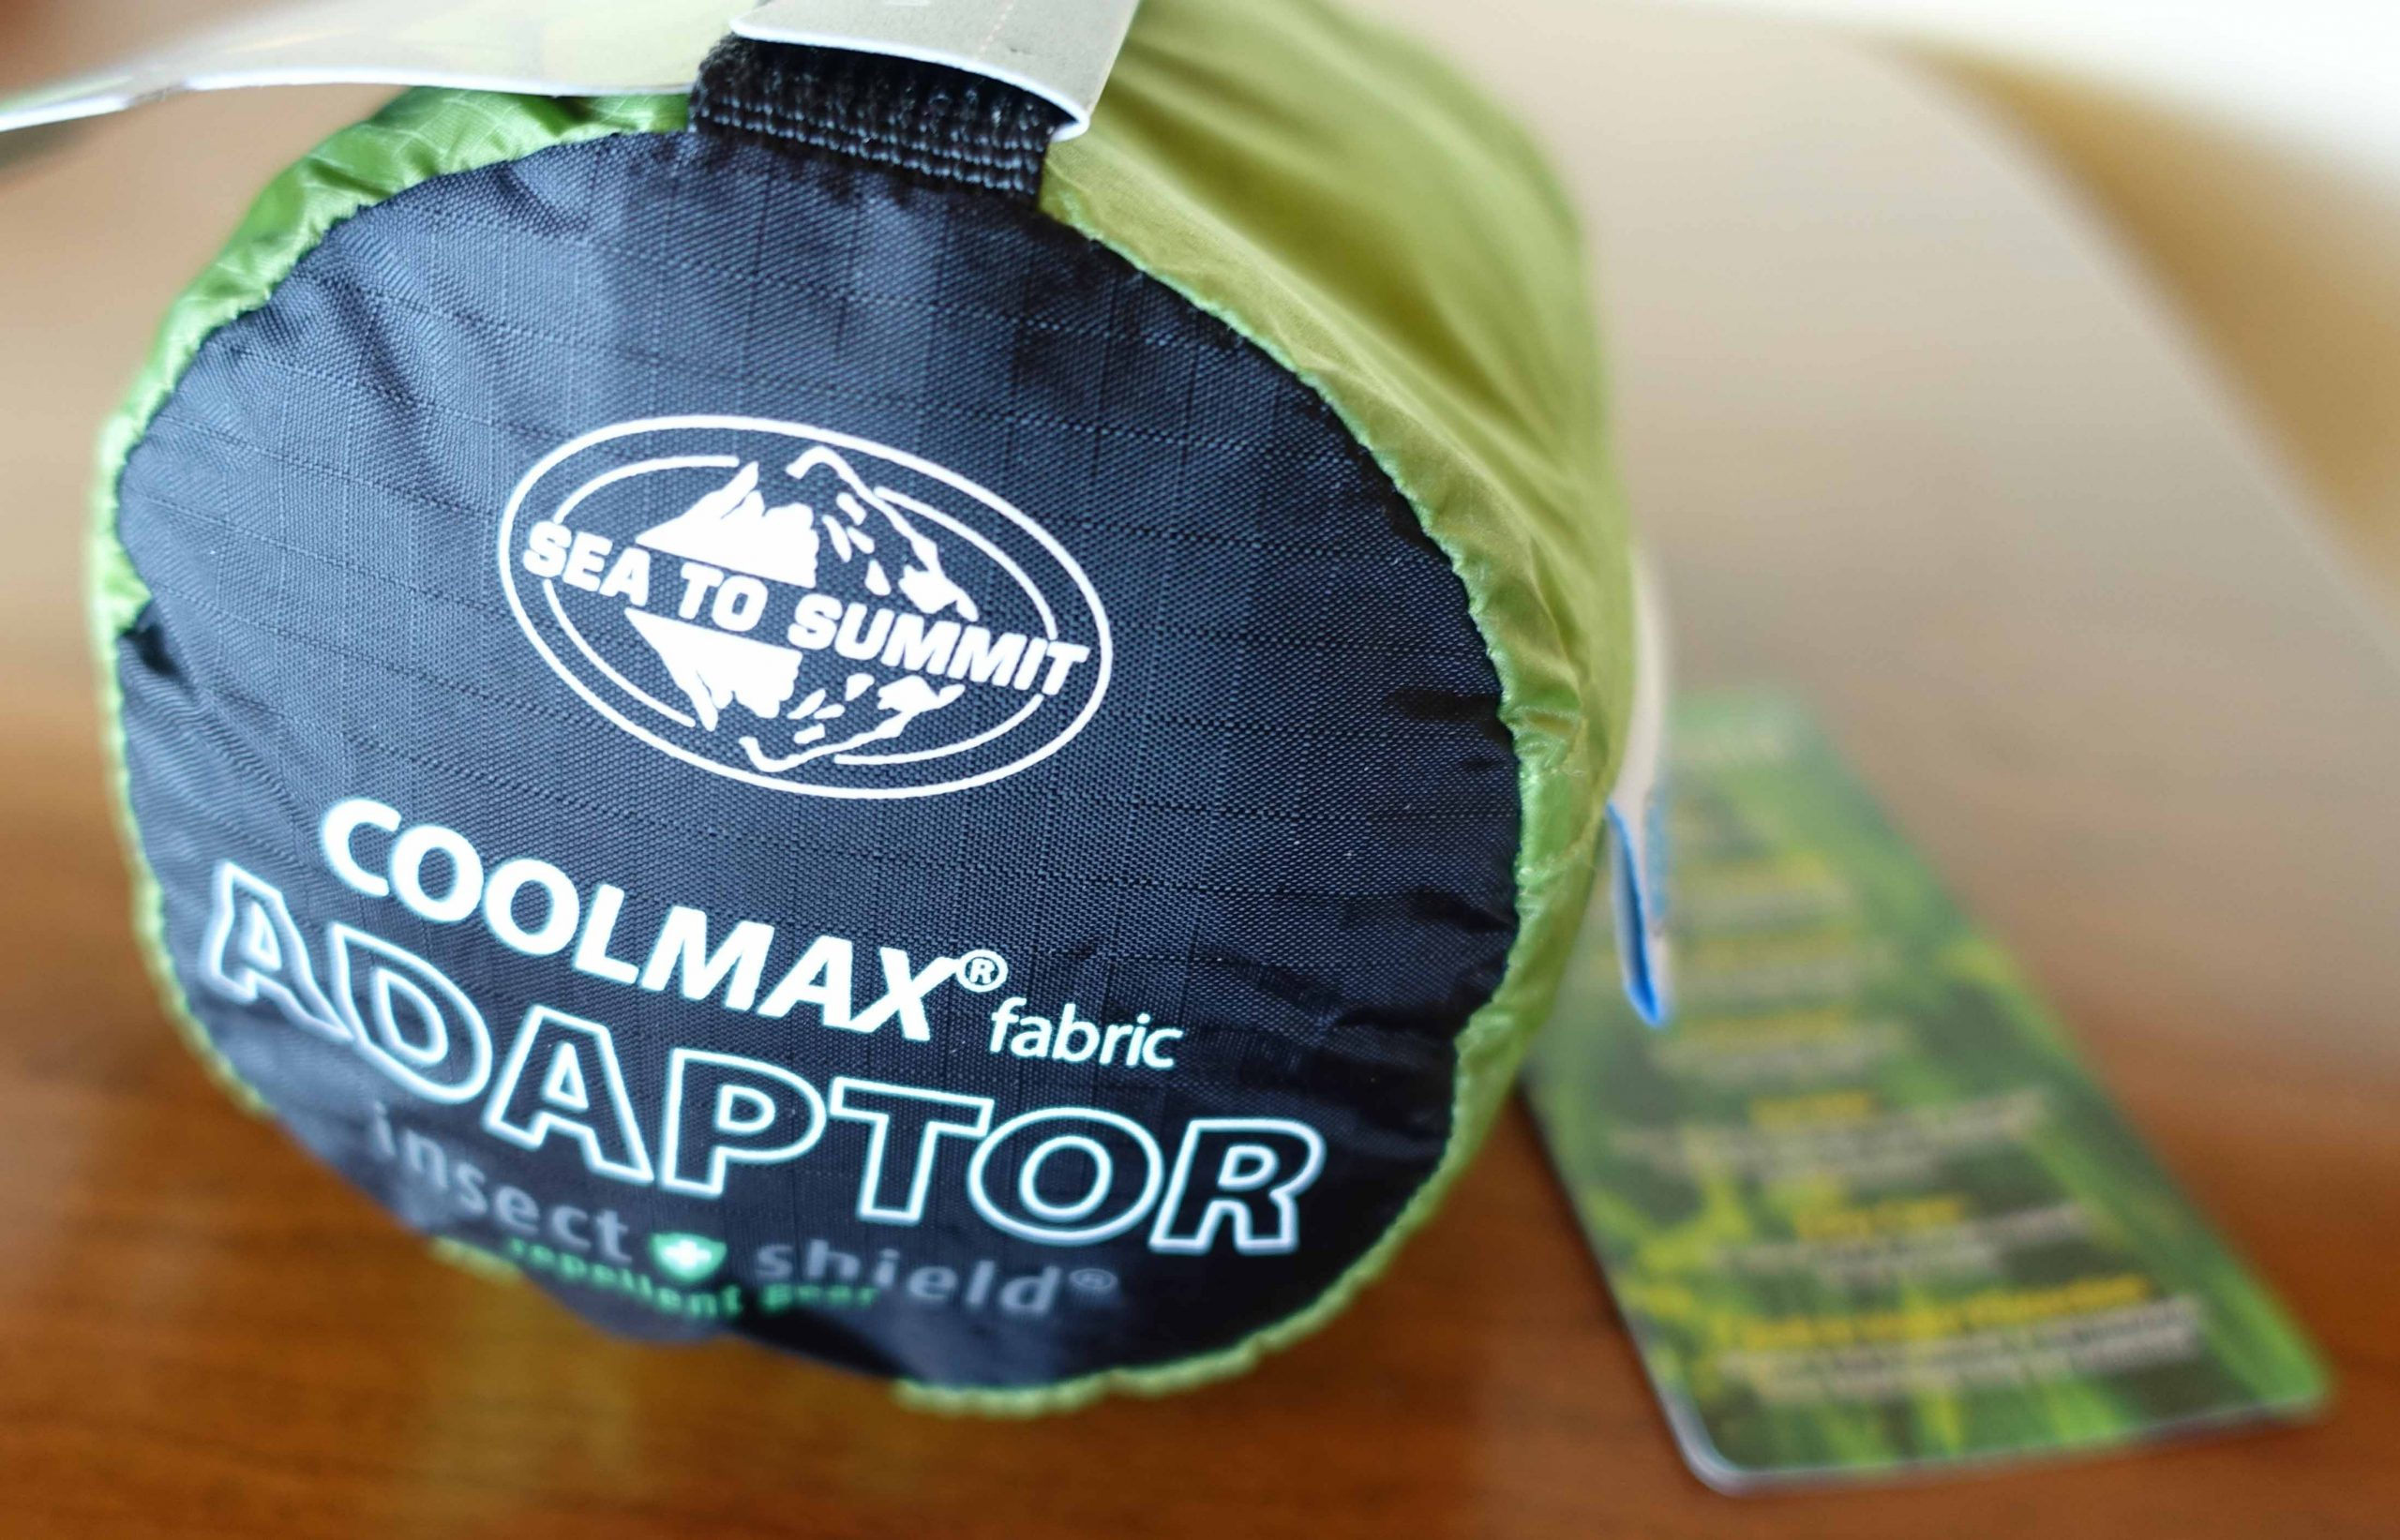 Review: Sea to Summit Coolmax Adaptor Traveller Liner with Insect Shield